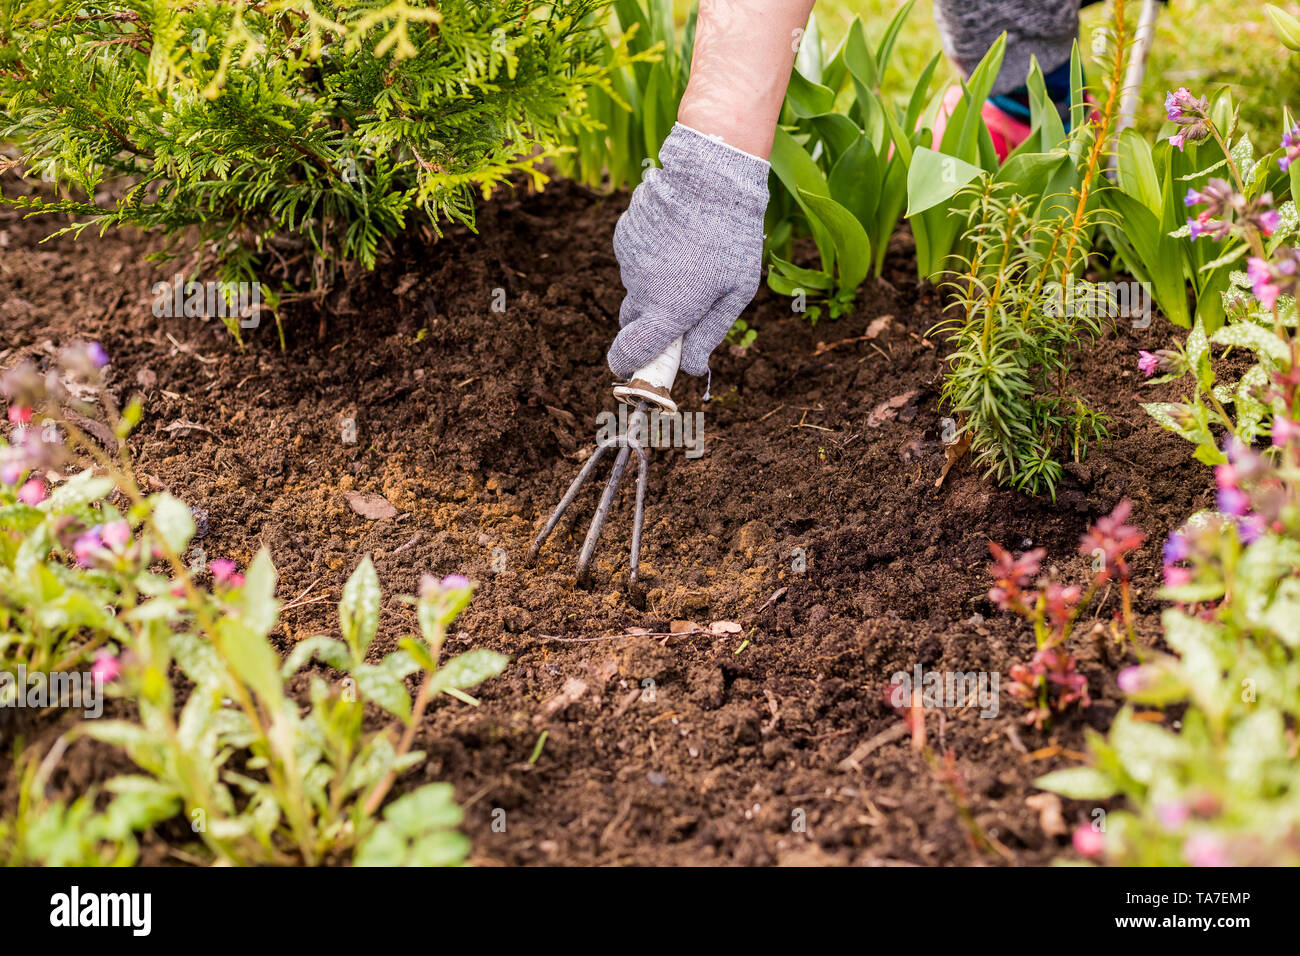 view of a woman's hand hoeing weeds in the garden on a hot summer day, weeding grass, garden and cleaning work in the garden in the spring soil prepar - Stock Image